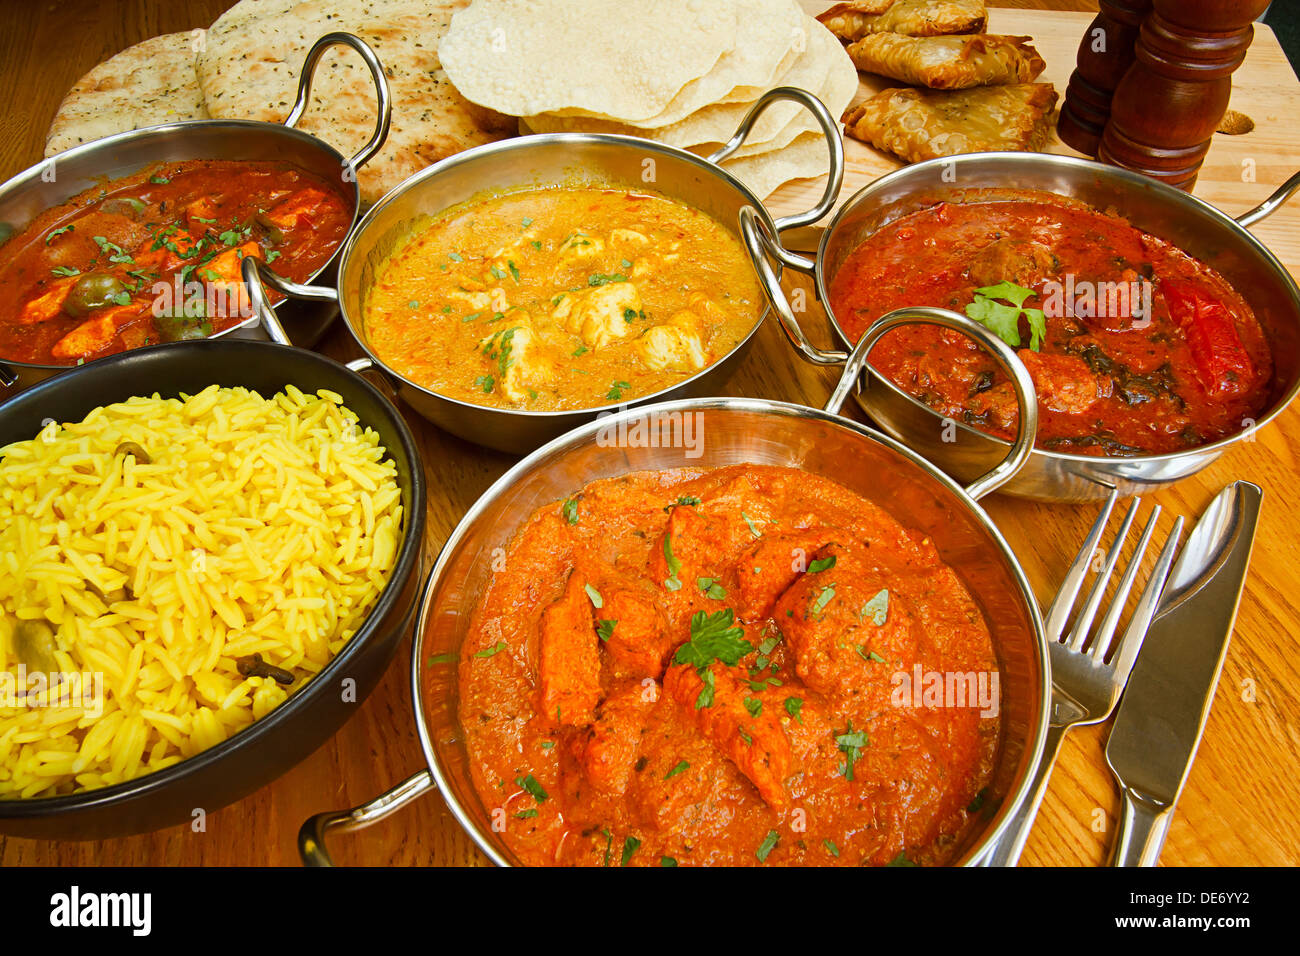 Varied selection of indian cuisine on table including chicken tikka varied selection of indian cuisine on table including chicken tikka beef rogan josh chicken jalfrezi and chicken korma forumfinder Choice Image